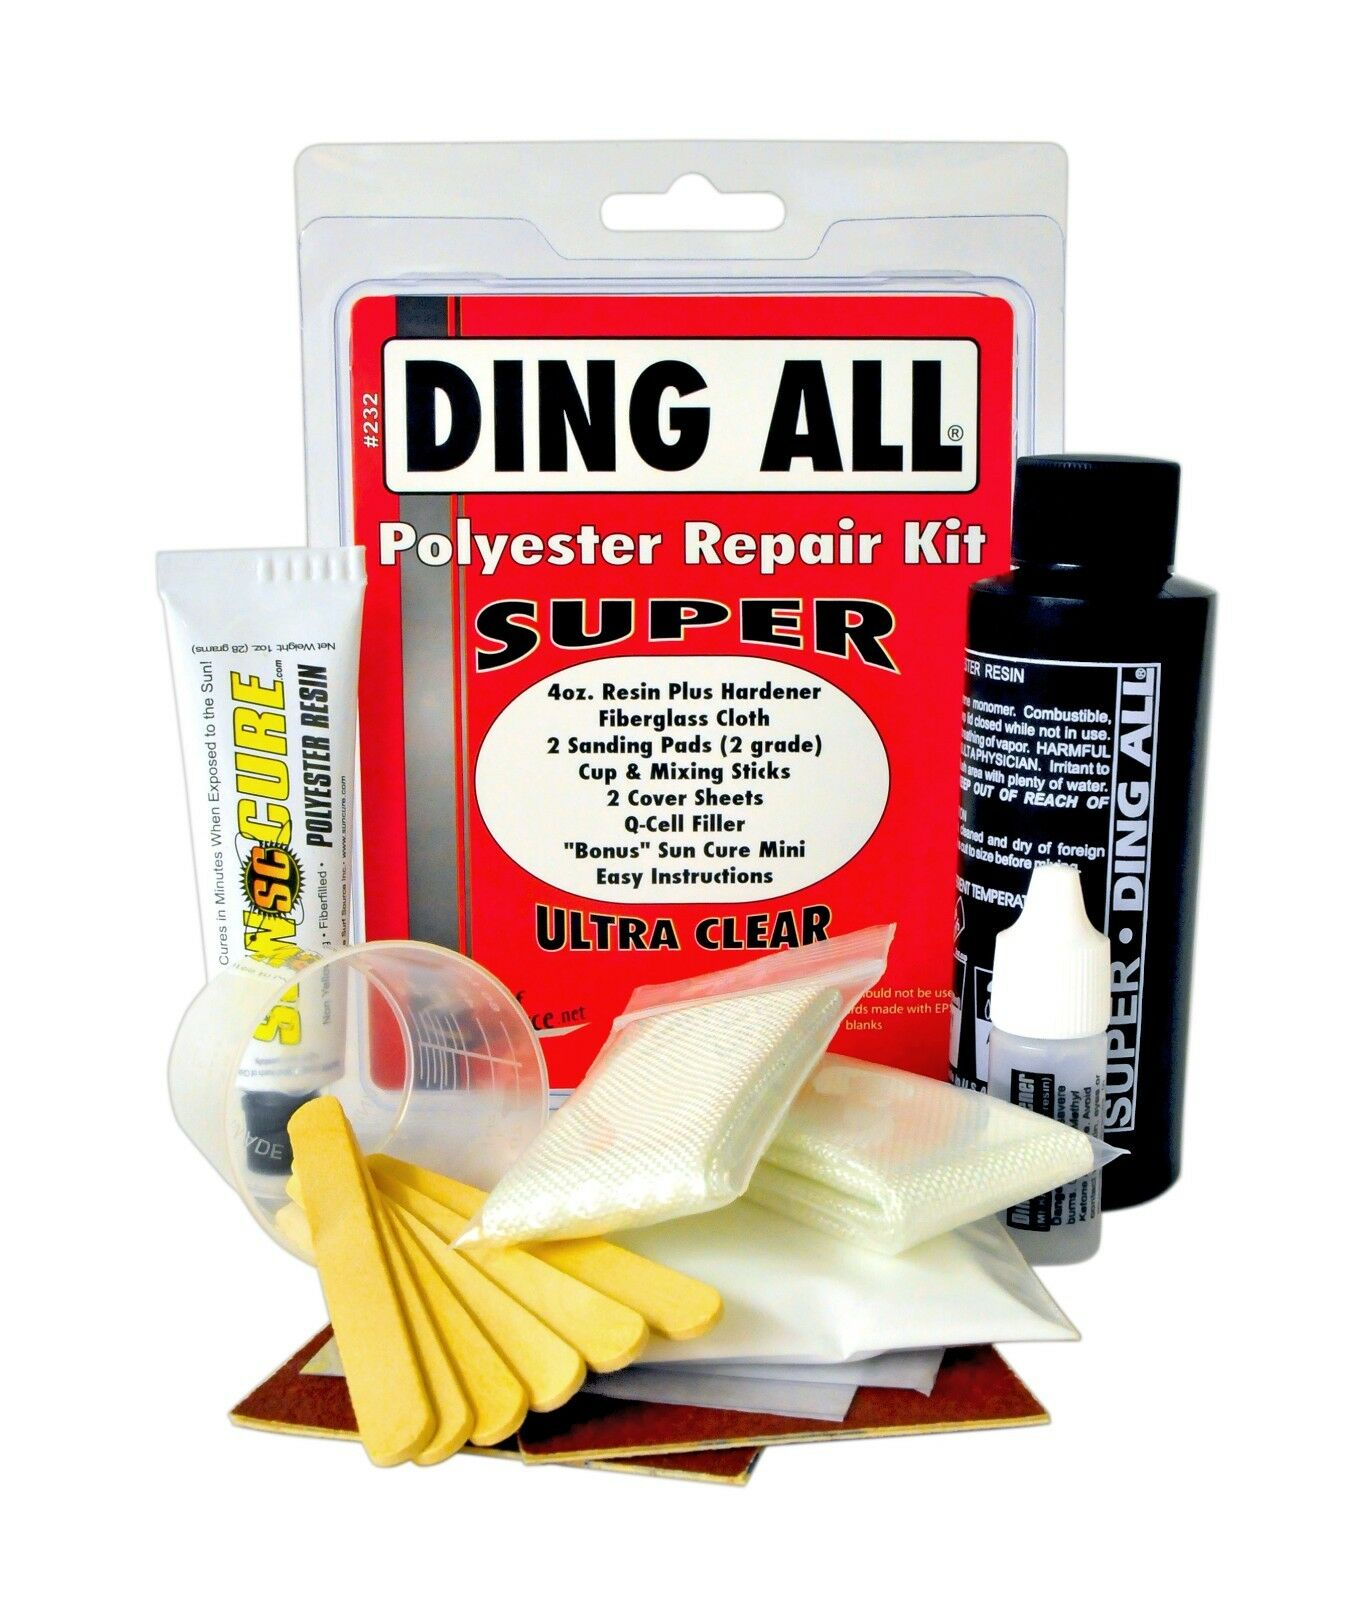 Ding All Super (Polyester) Repair Kit